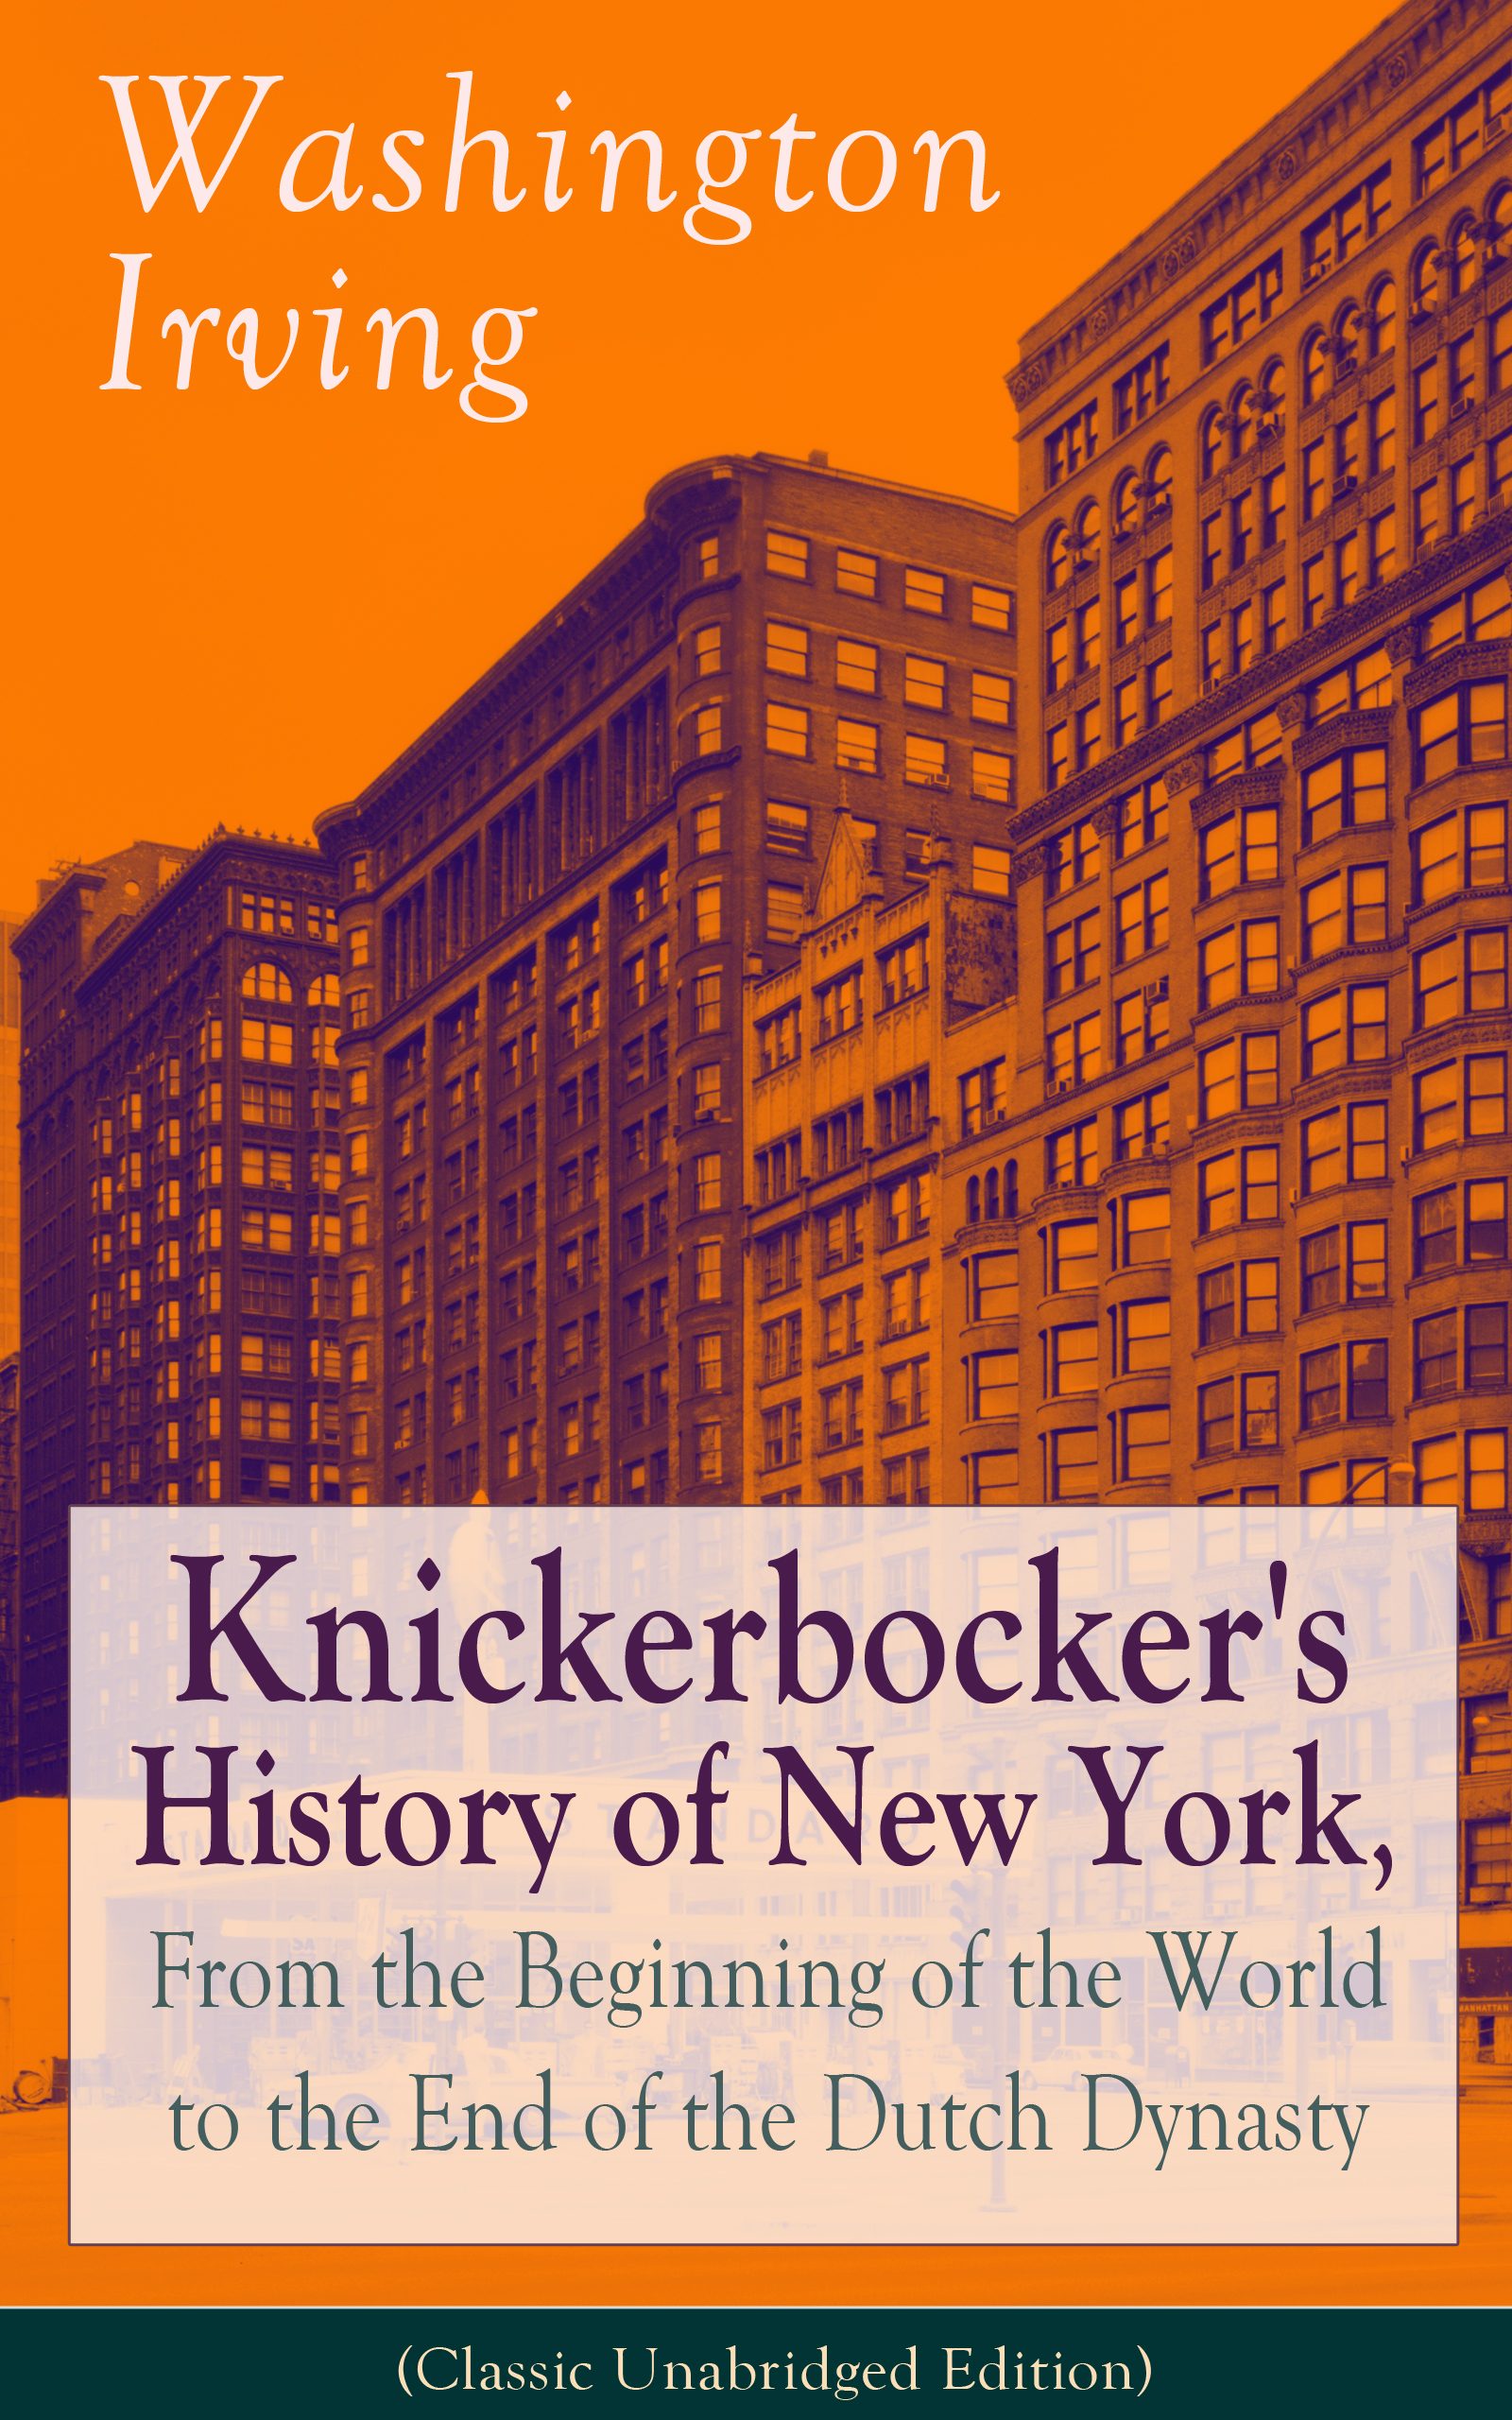 Вашингтон Ирвинг Knickerbocker's History of New York, From the Beginning of the World to the End of the Dutch Dynasty (Classic Unabridged Edition) mammals of the world third edition